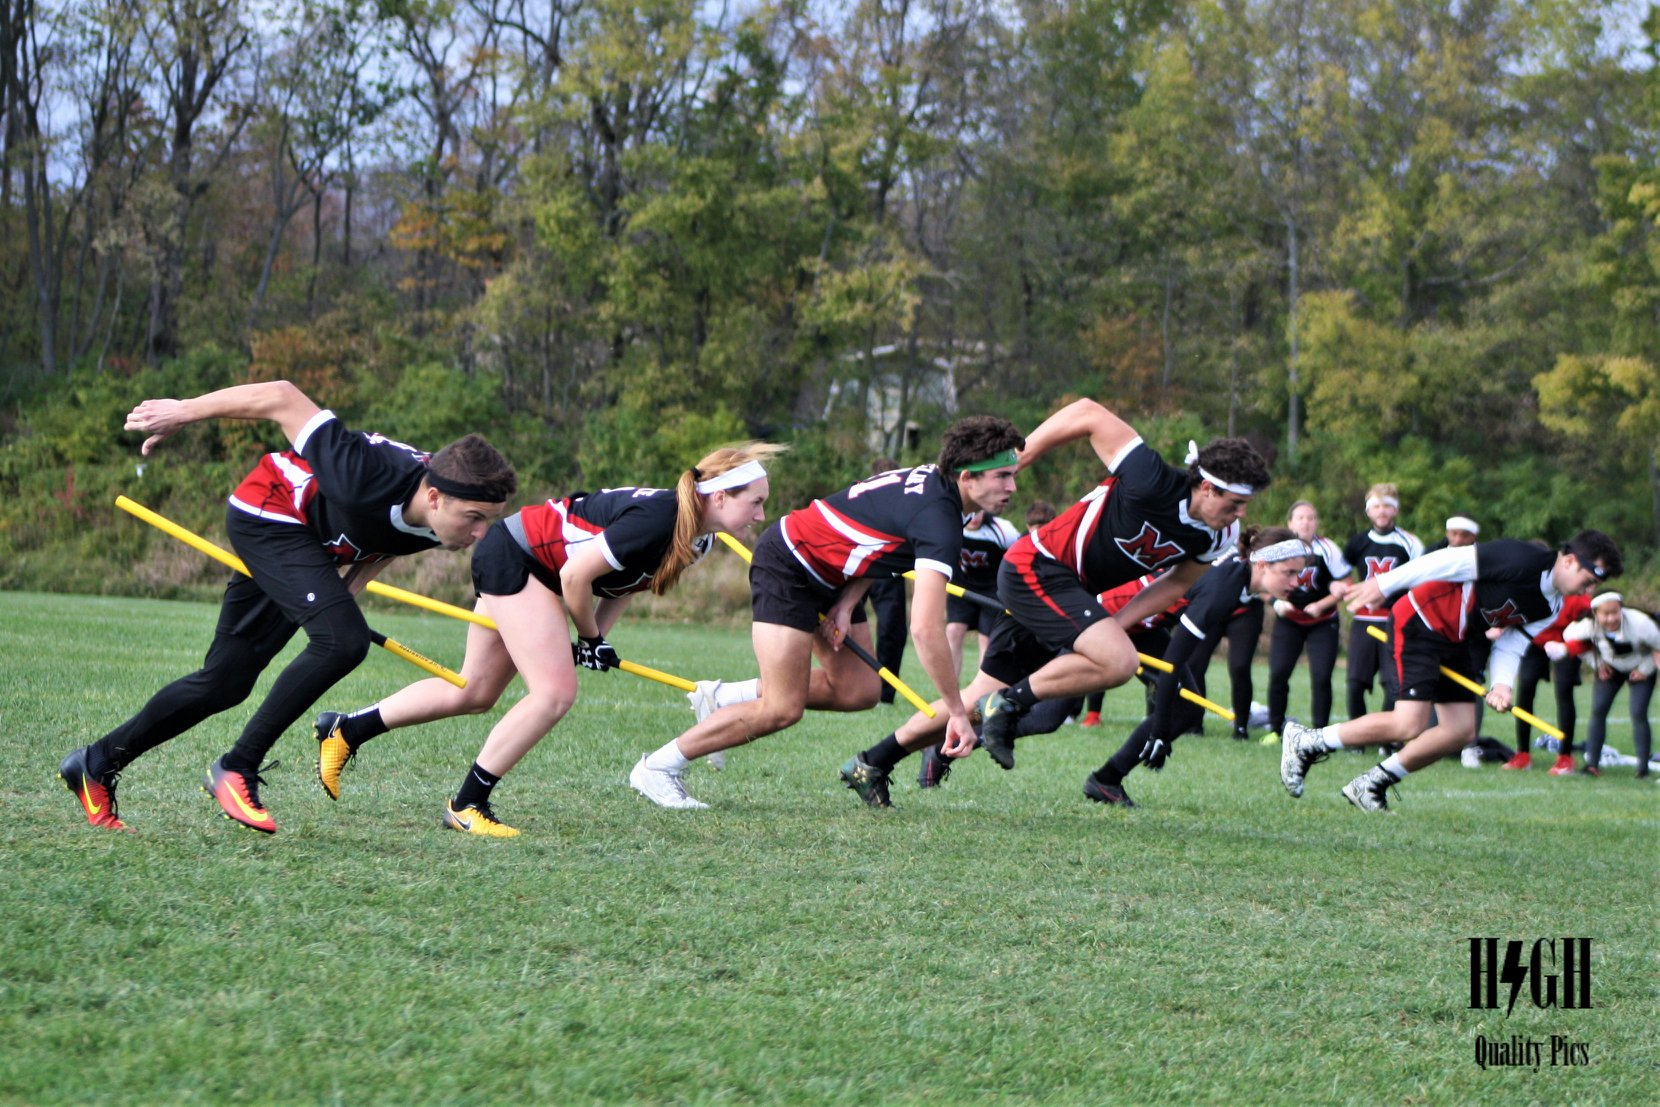 Miami University quidditch team